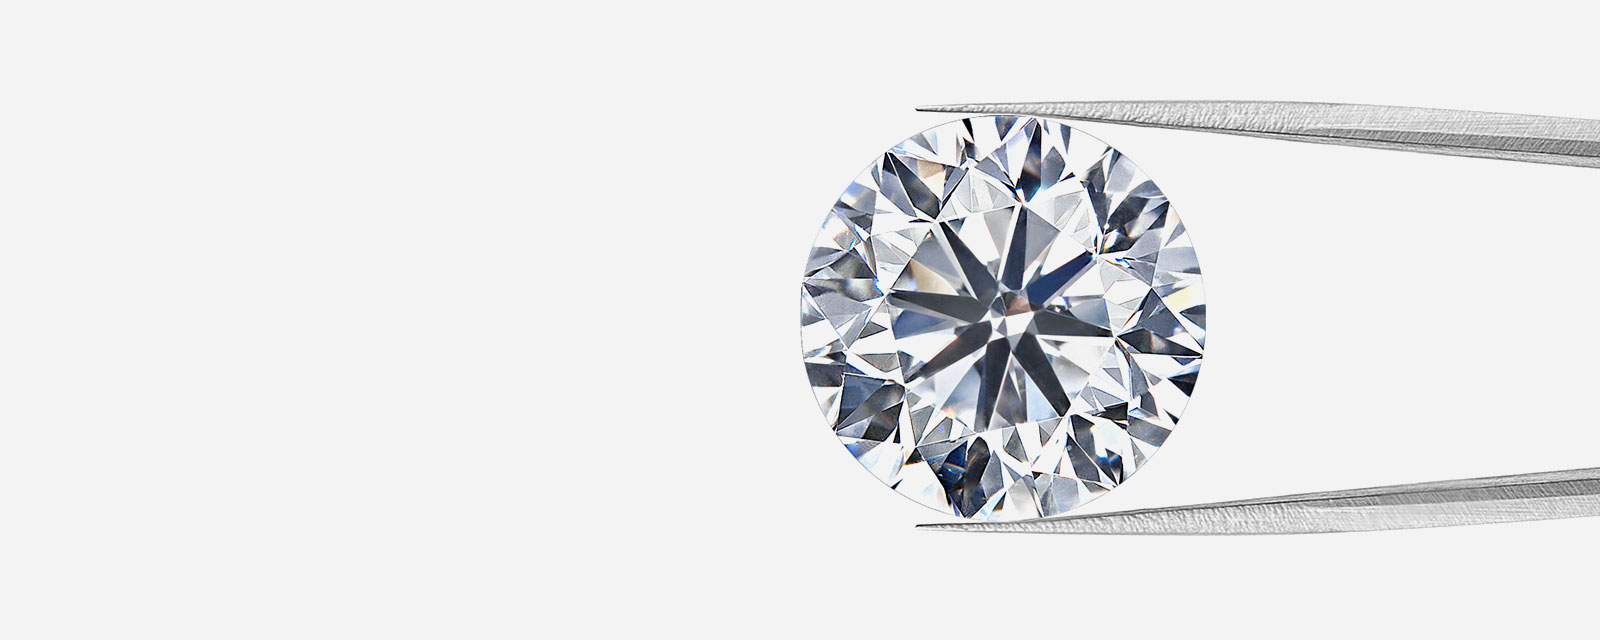 Find Your Perfect Diamond Browse our extensive selection of natural diamonds. Washington Diamond Falls Church, VA